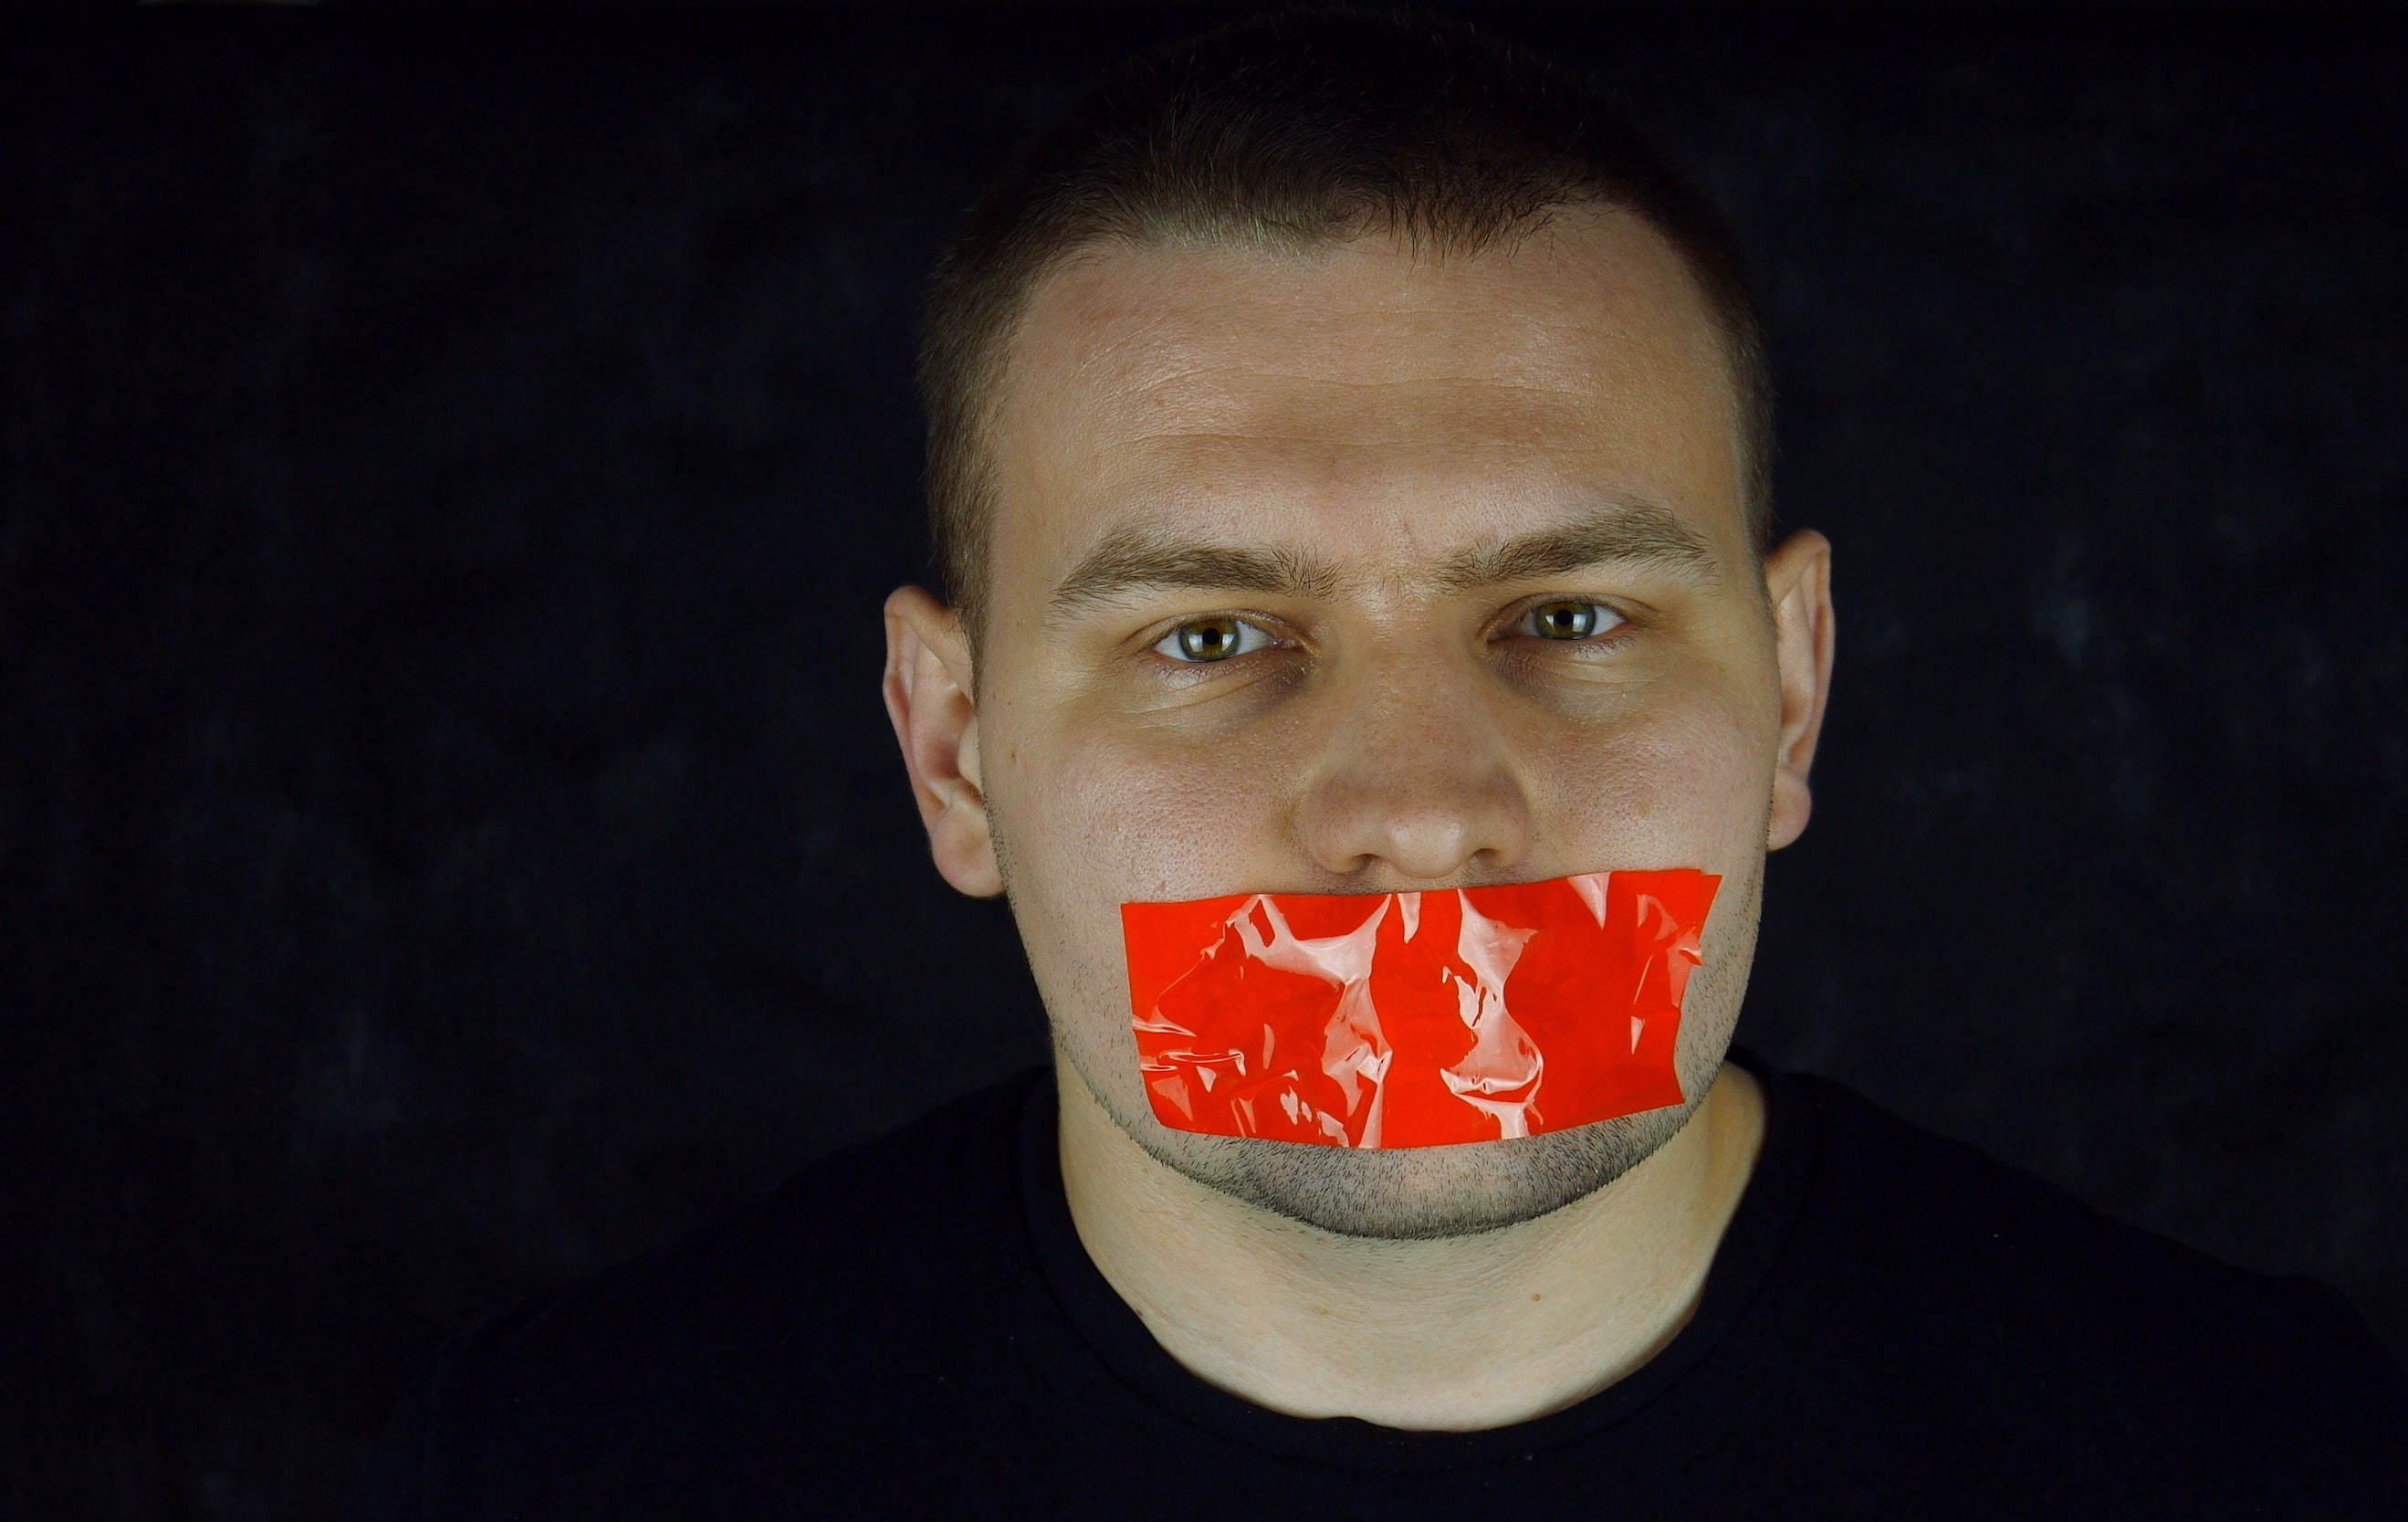 Man with red tape over his mouth